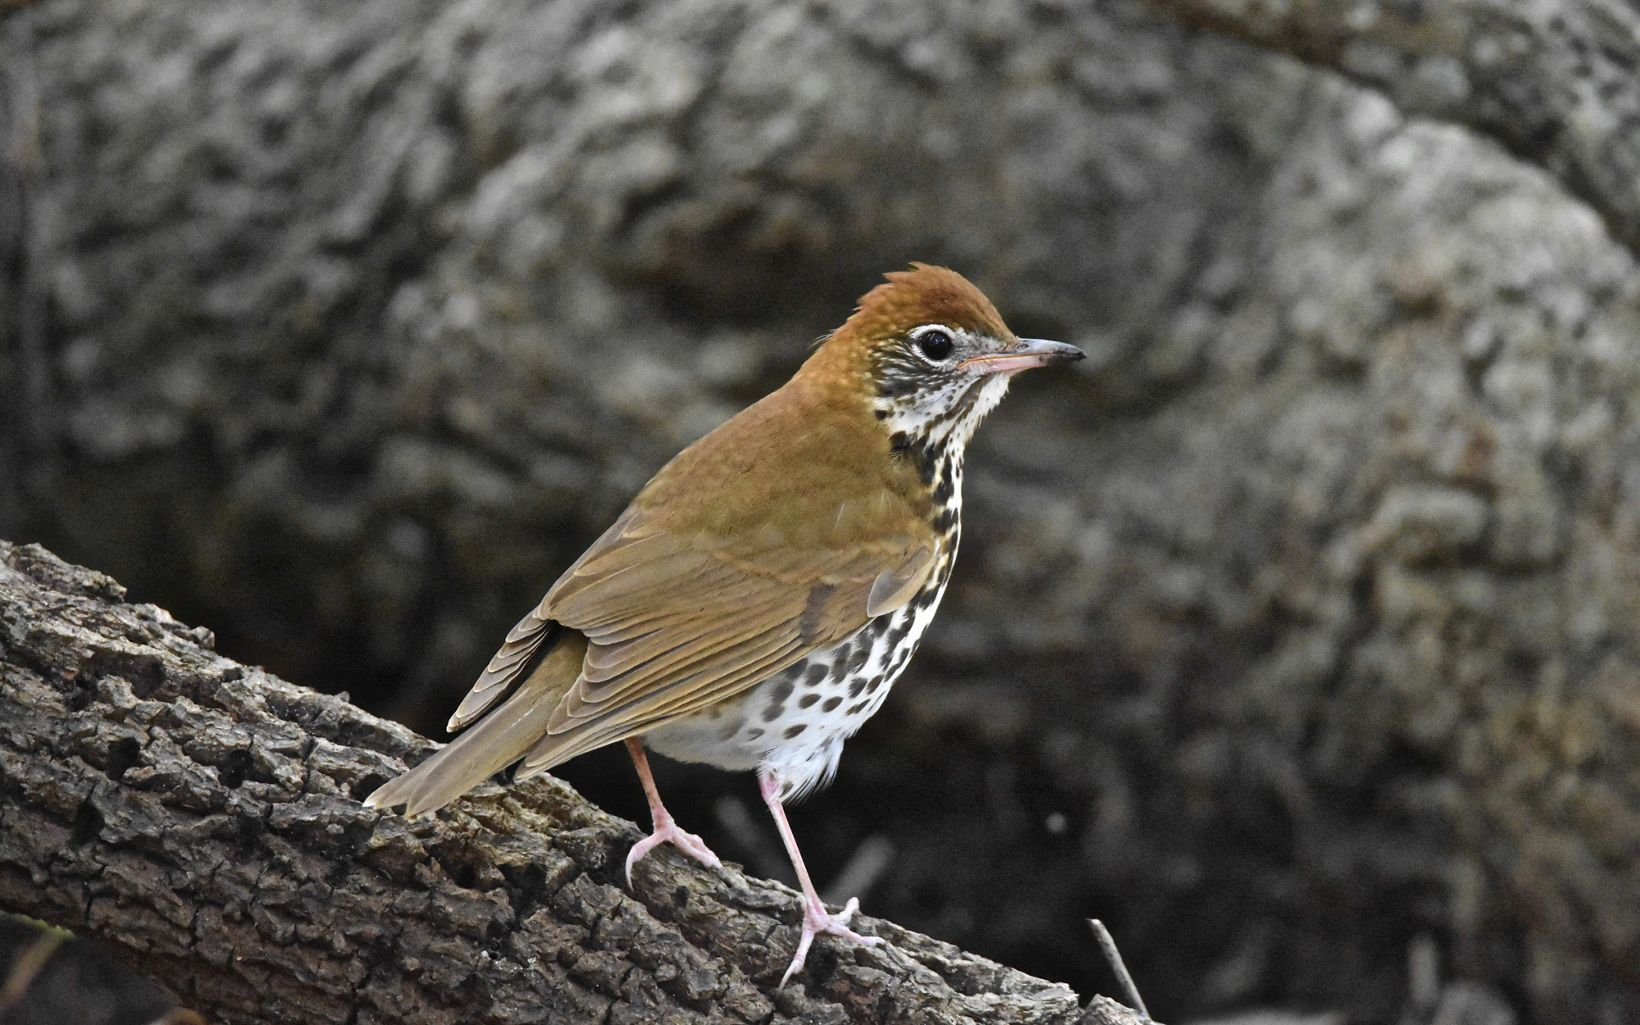 A brown bird rests on a branch.